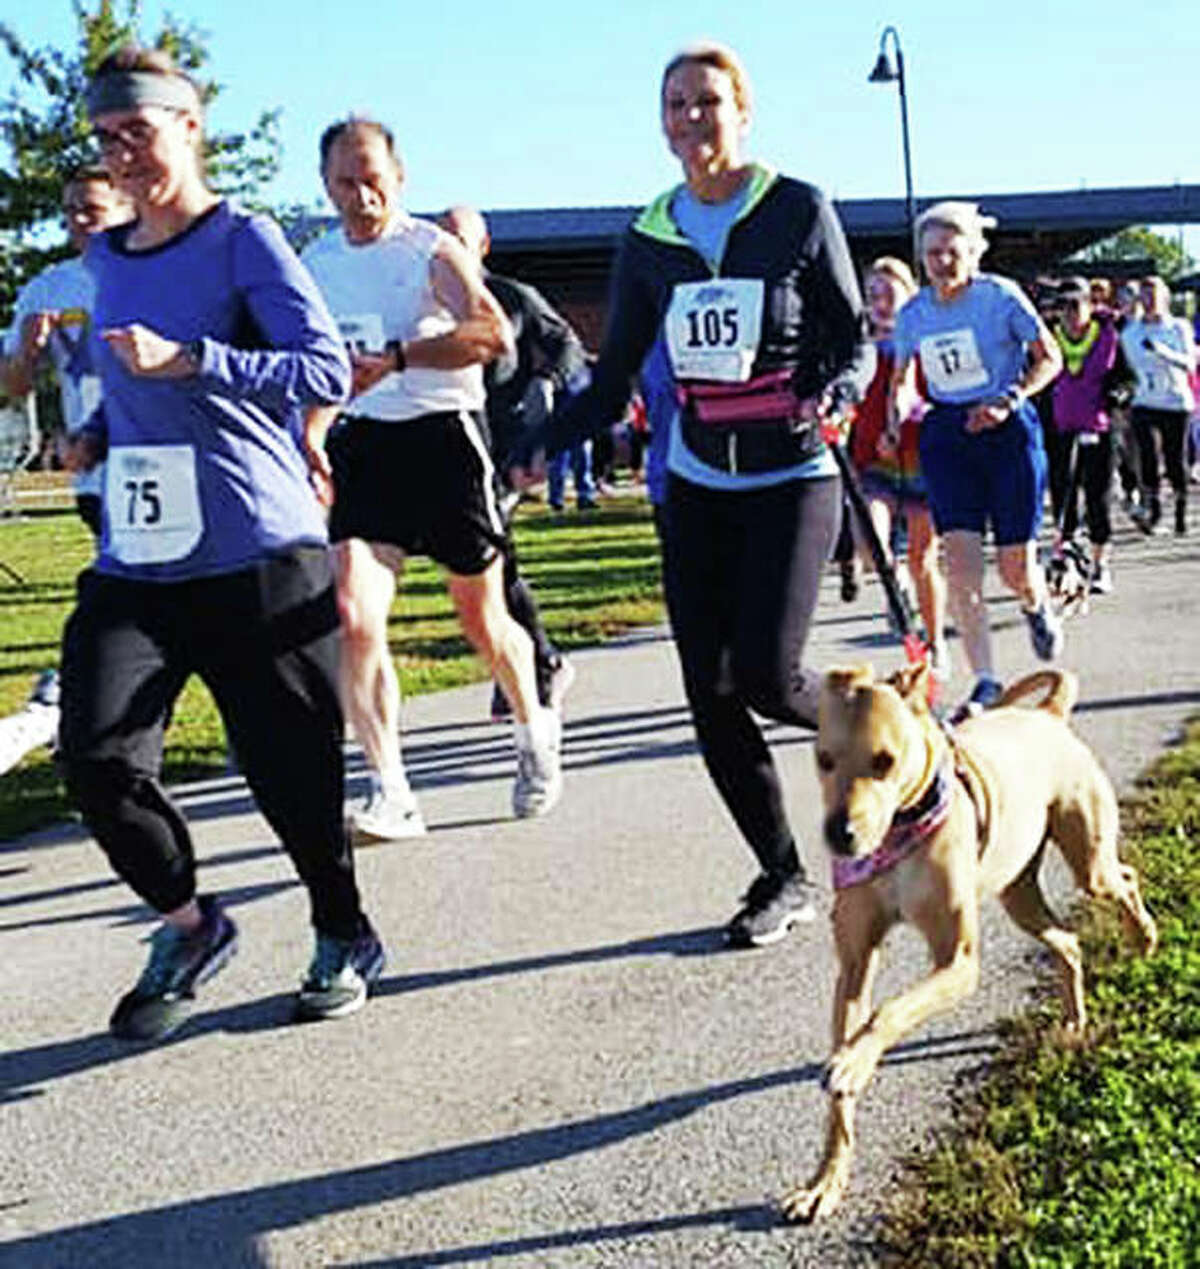 Hope Animal Rescues' 7th Annual Run for Rescue is planned 8 a.m. to 2 p.m. Saturday, Oct. 19, at the Liberty Bank Amphitheater in Alton. The file photo is from a previous year of the event.